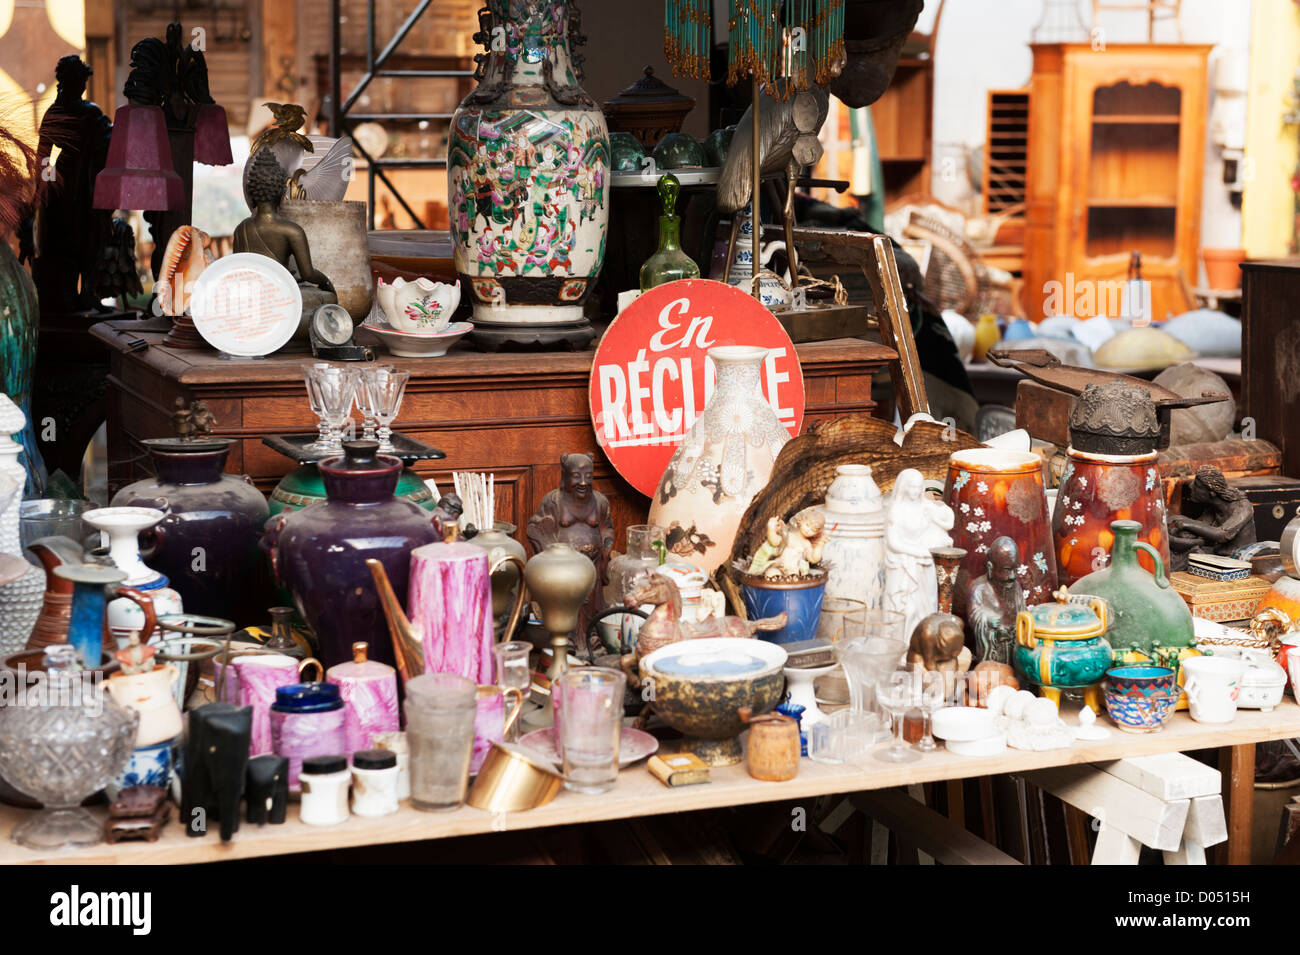 Marché aux Puces (flea market) at St-Ouen near to Clignancourt in the north of Paris, France. - Stock Image